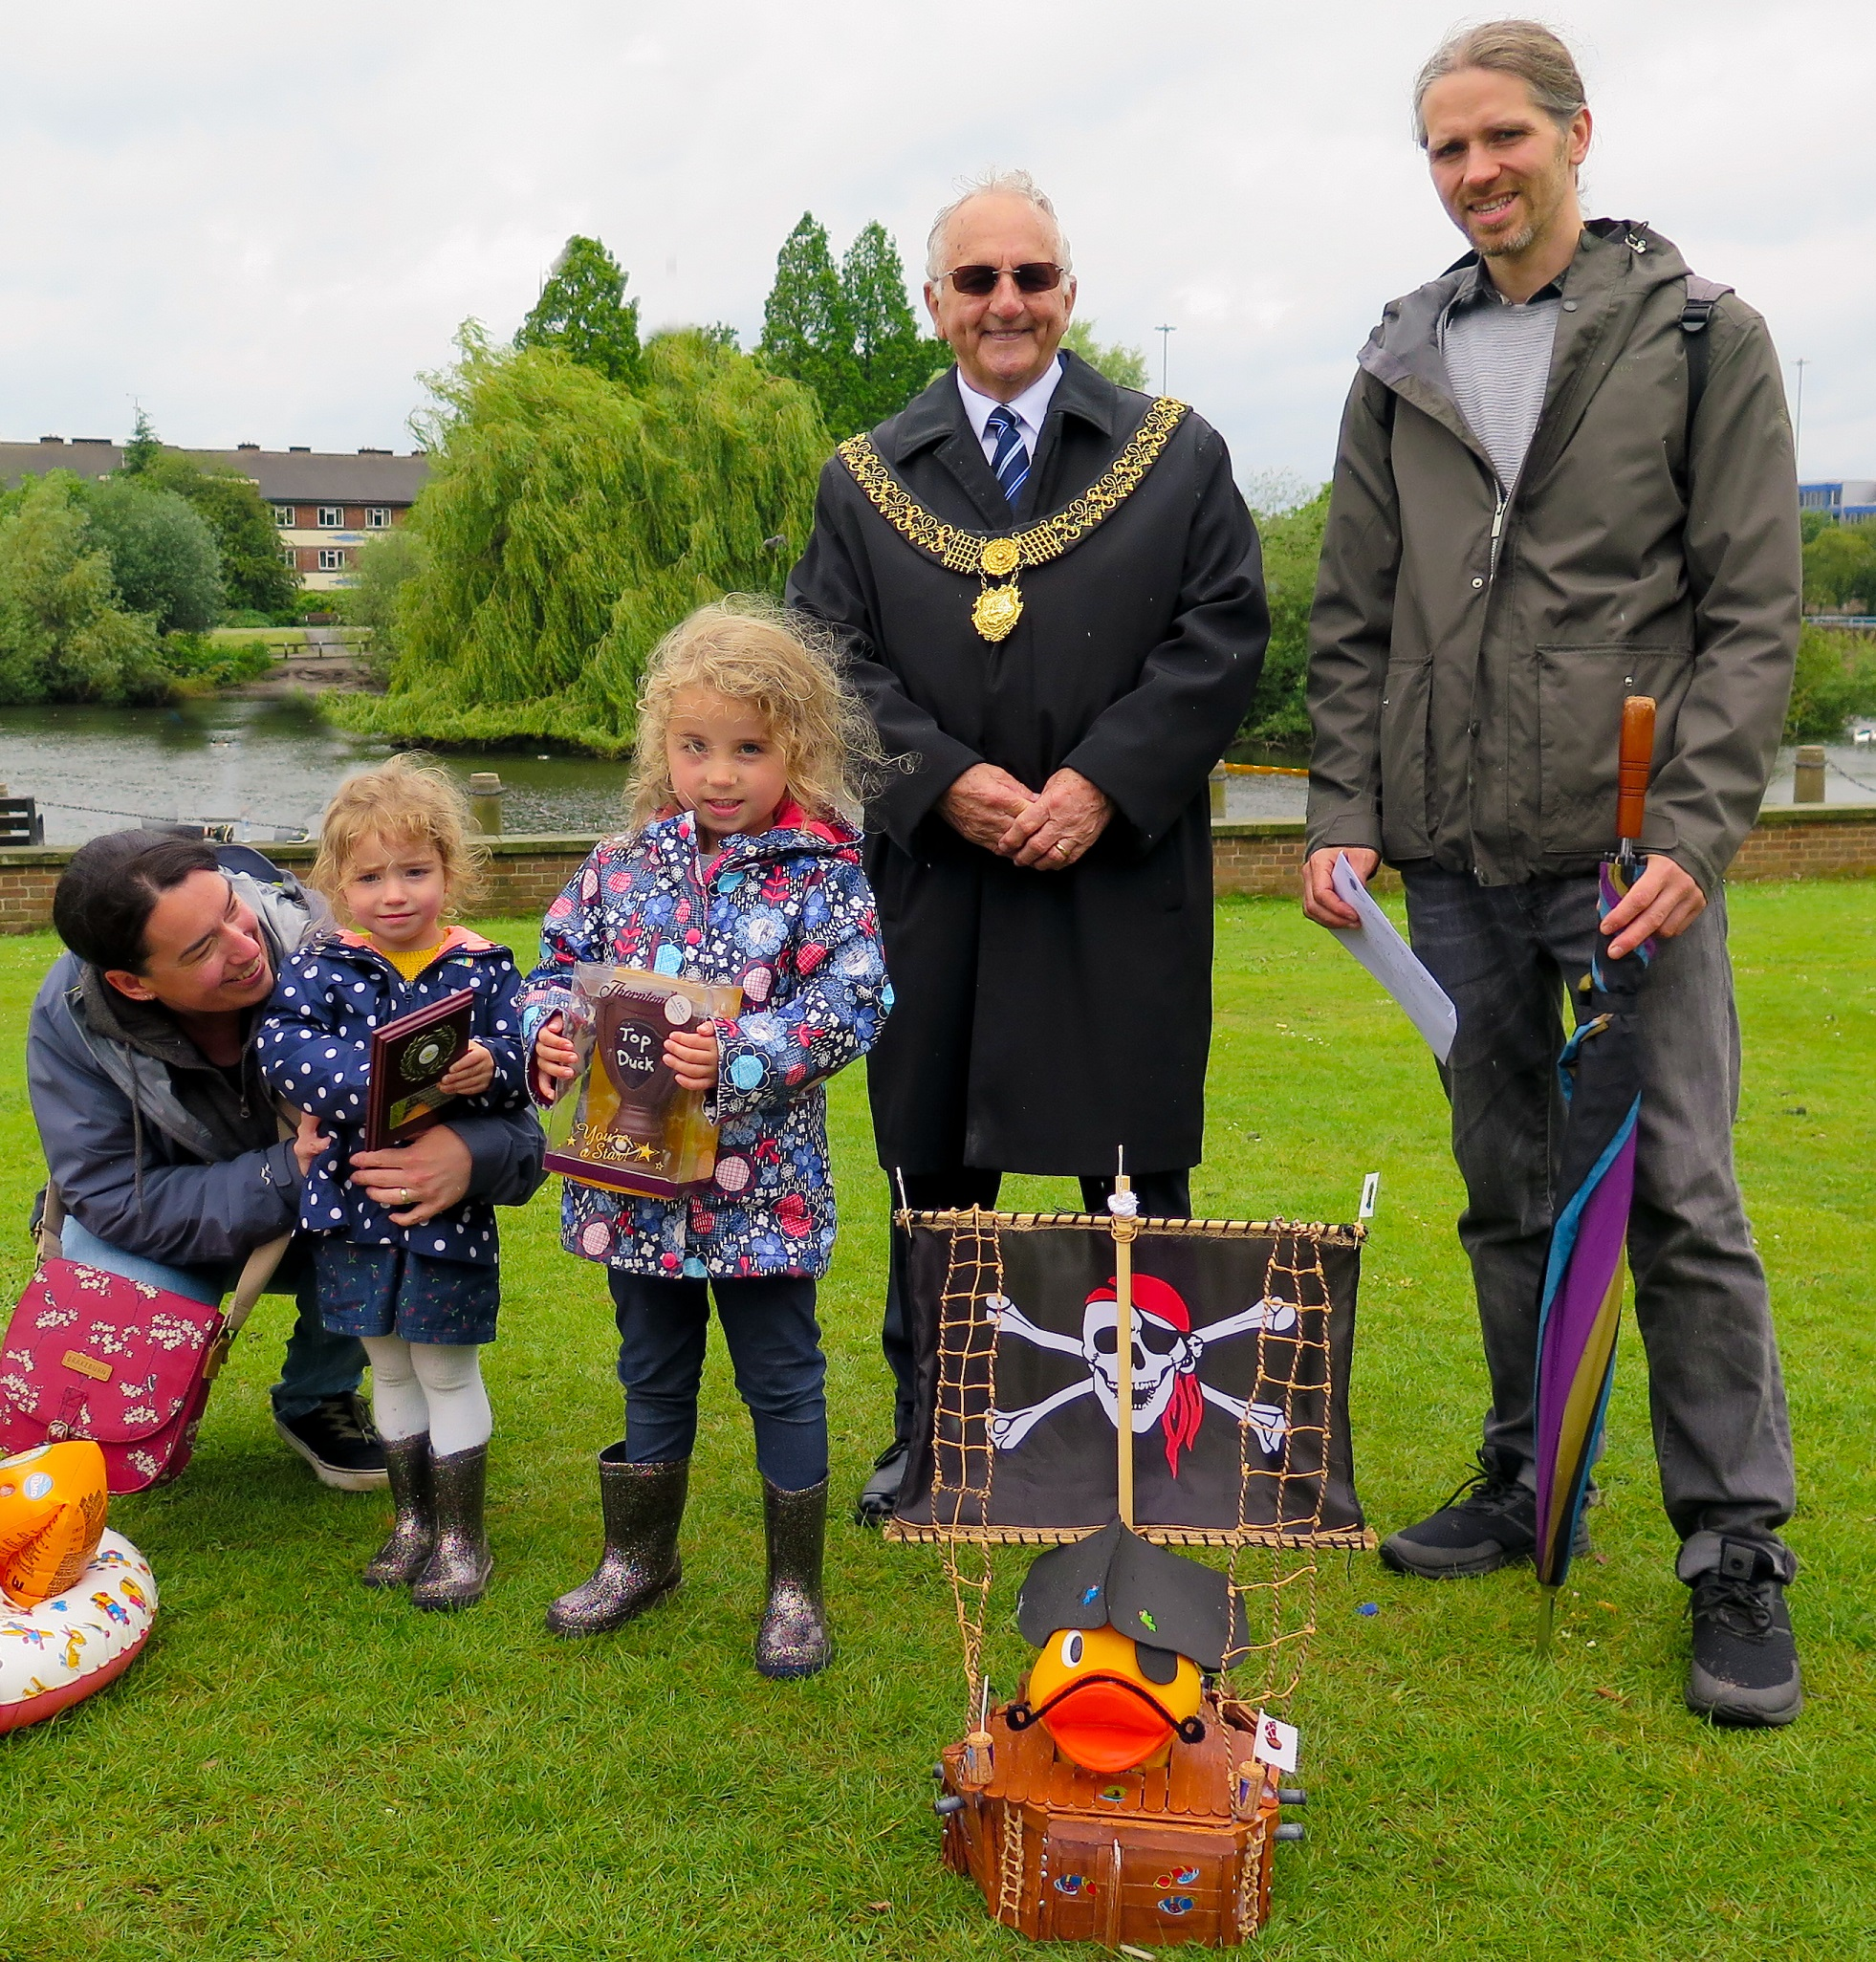 Best dressed duck winner Gordon Smith with Pirate Duck and family